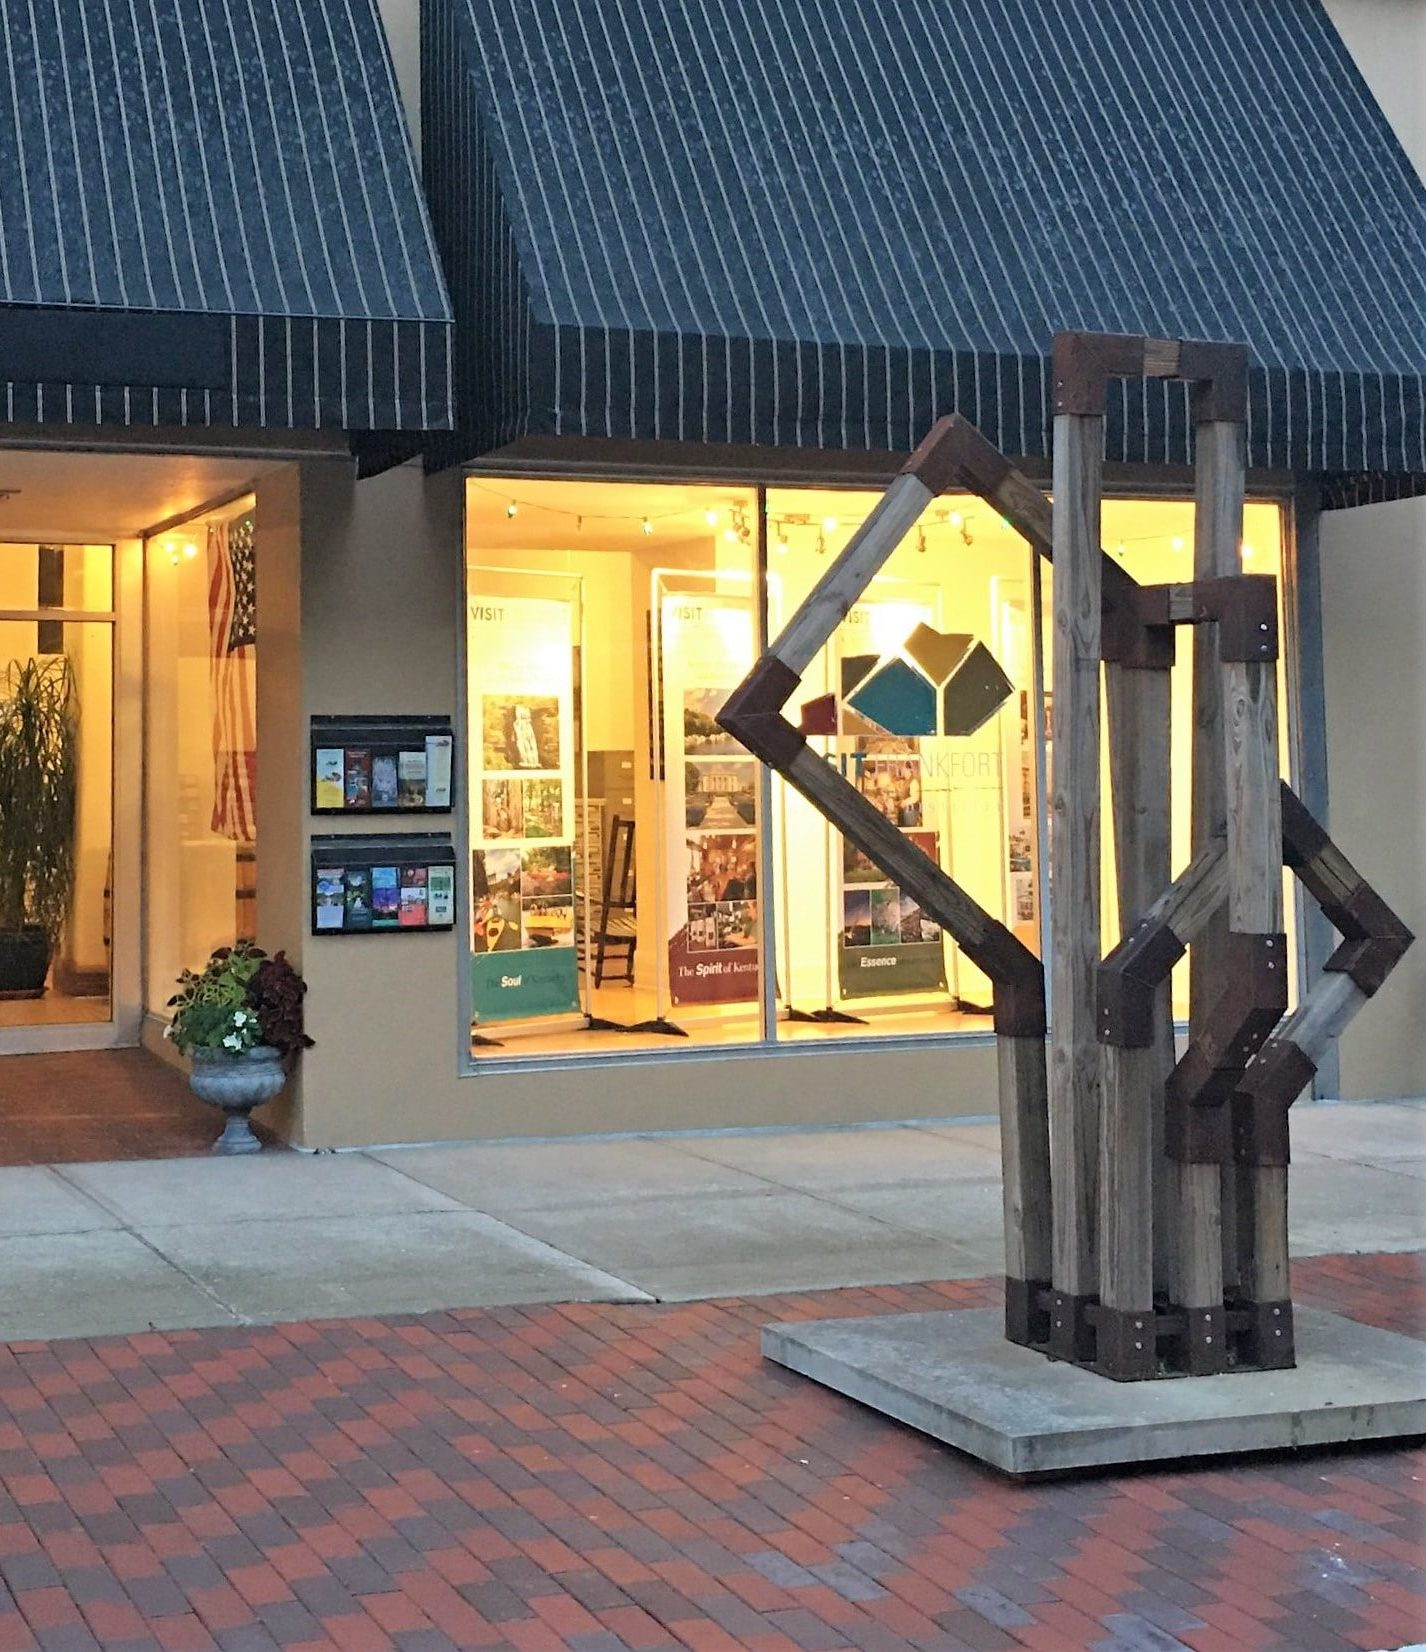 InMotion sculpture outside Visit Frankfort office